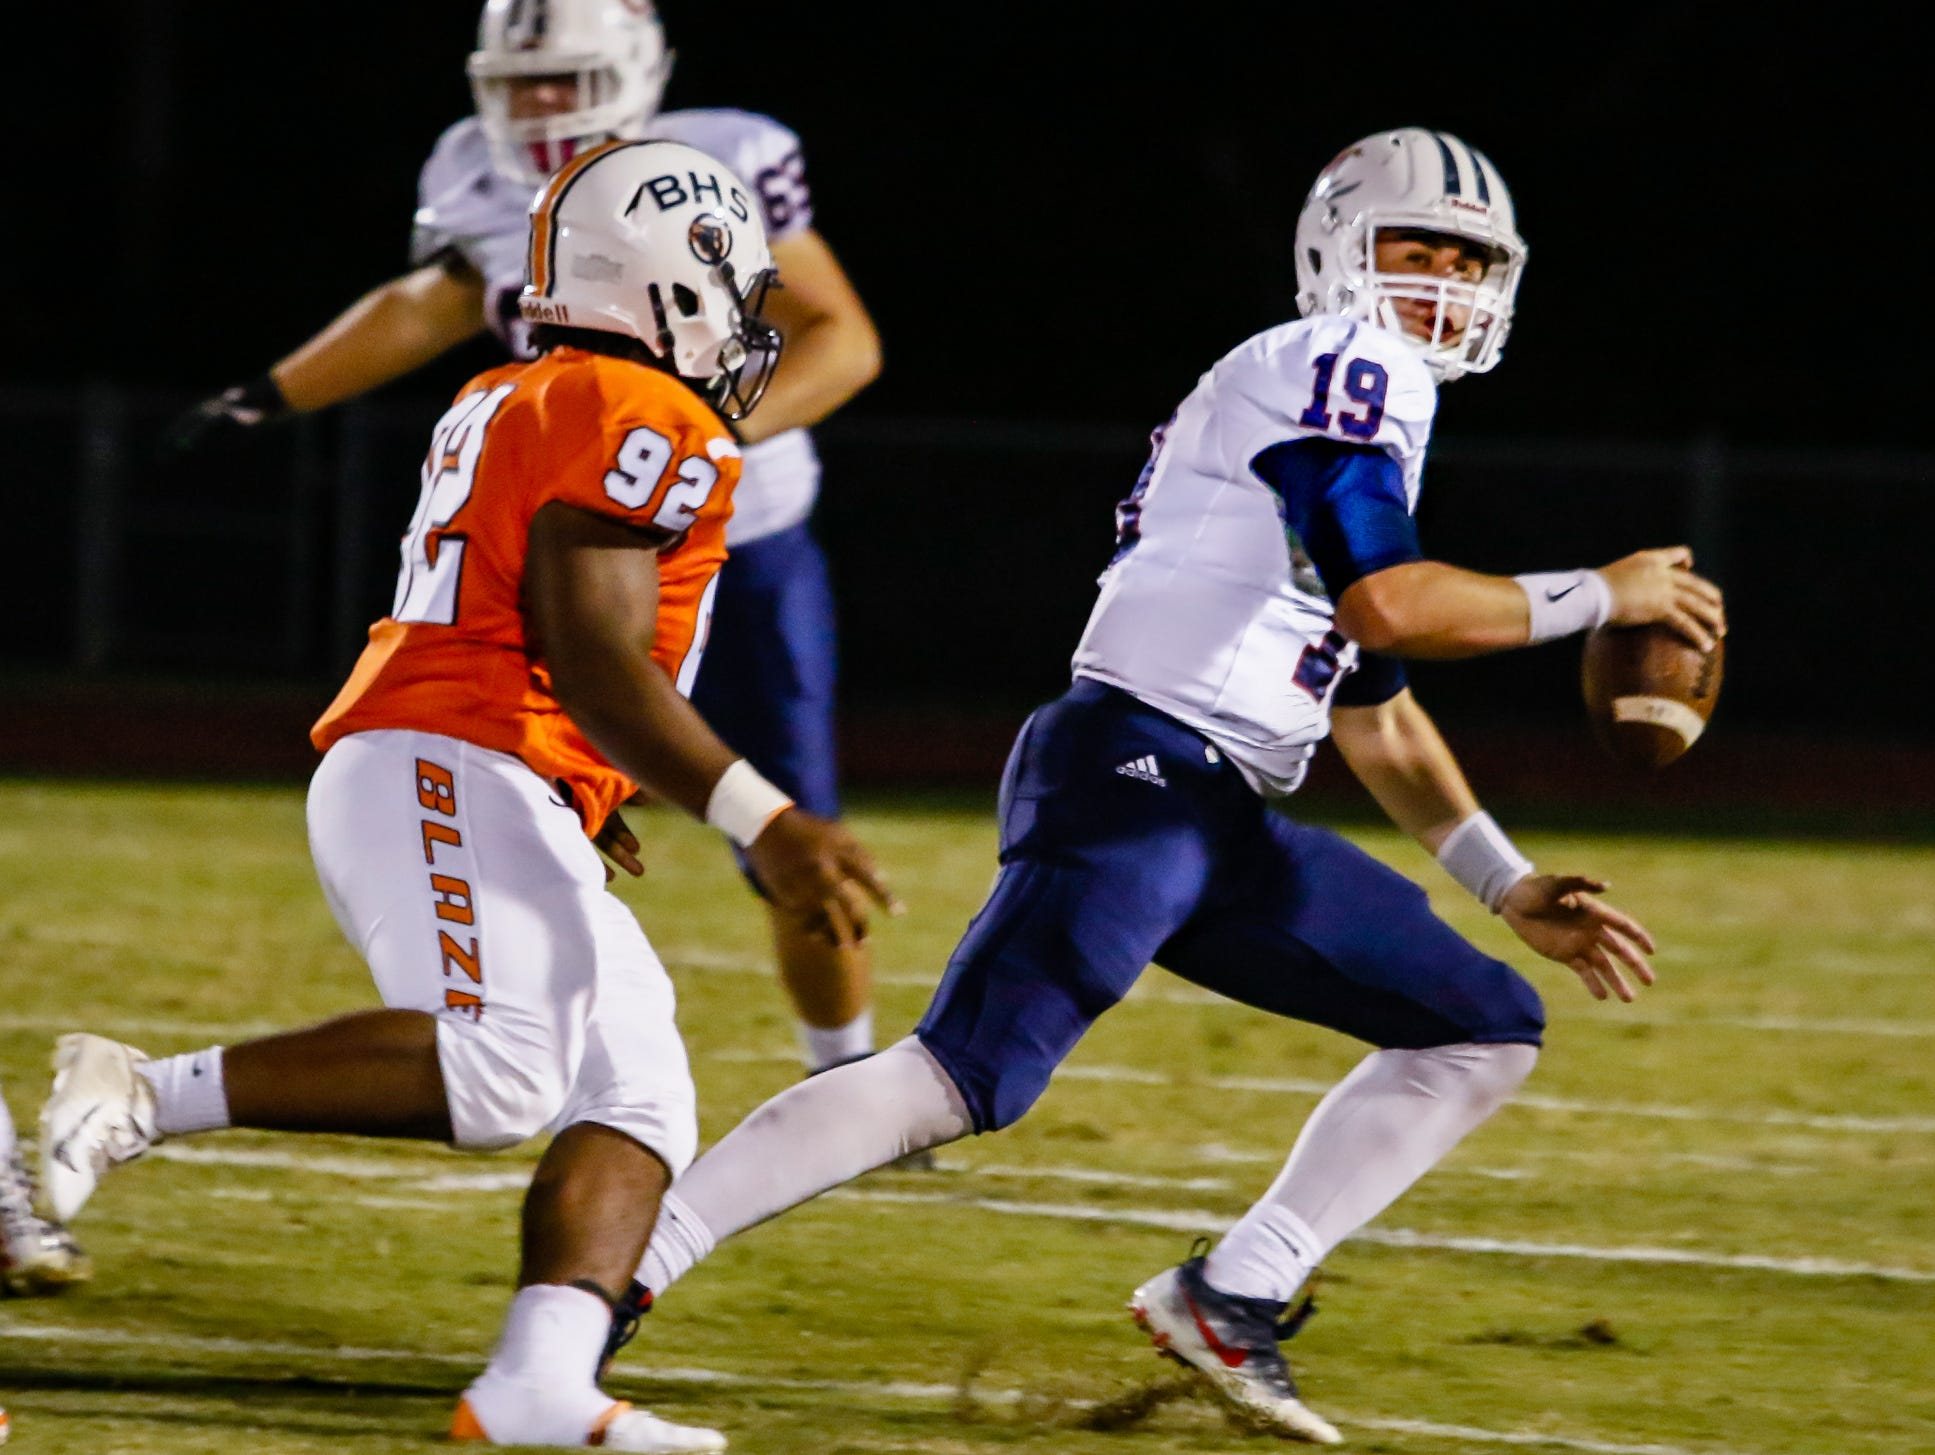 Cookeville quarterback Robert Espinosa tries but ultimately fails to escape being tackled by Blackman's Lorenzo Smith.